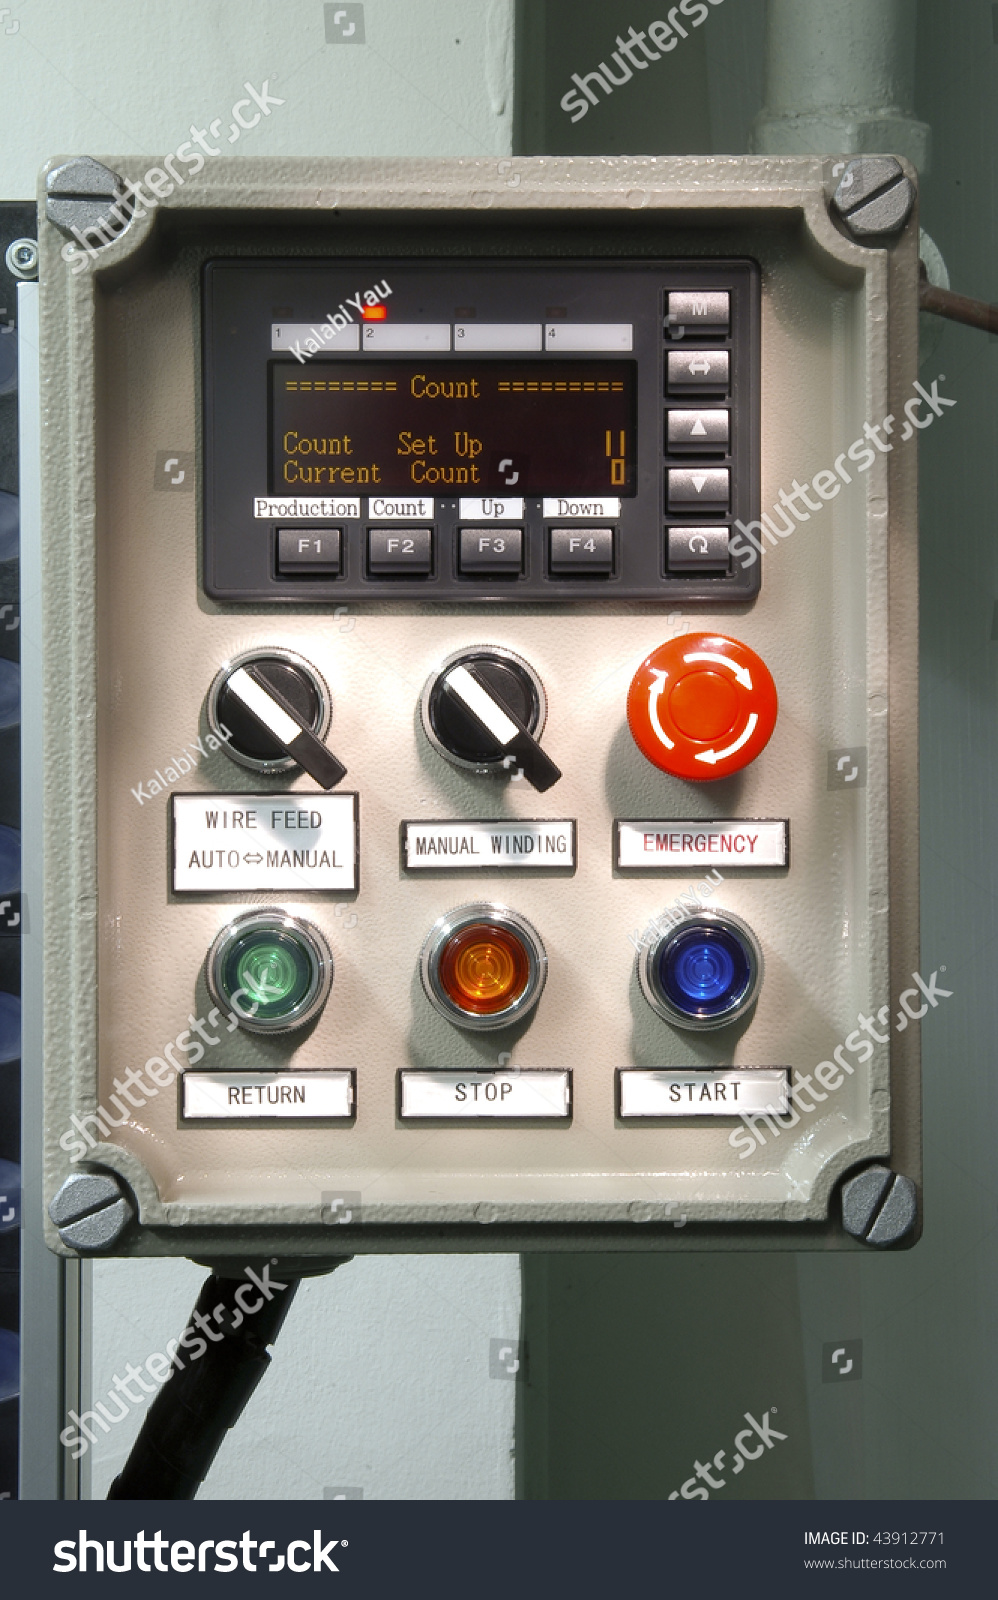 Ignition Wiring Diagram For 50 Hp Force Free Download Wiring Diagram